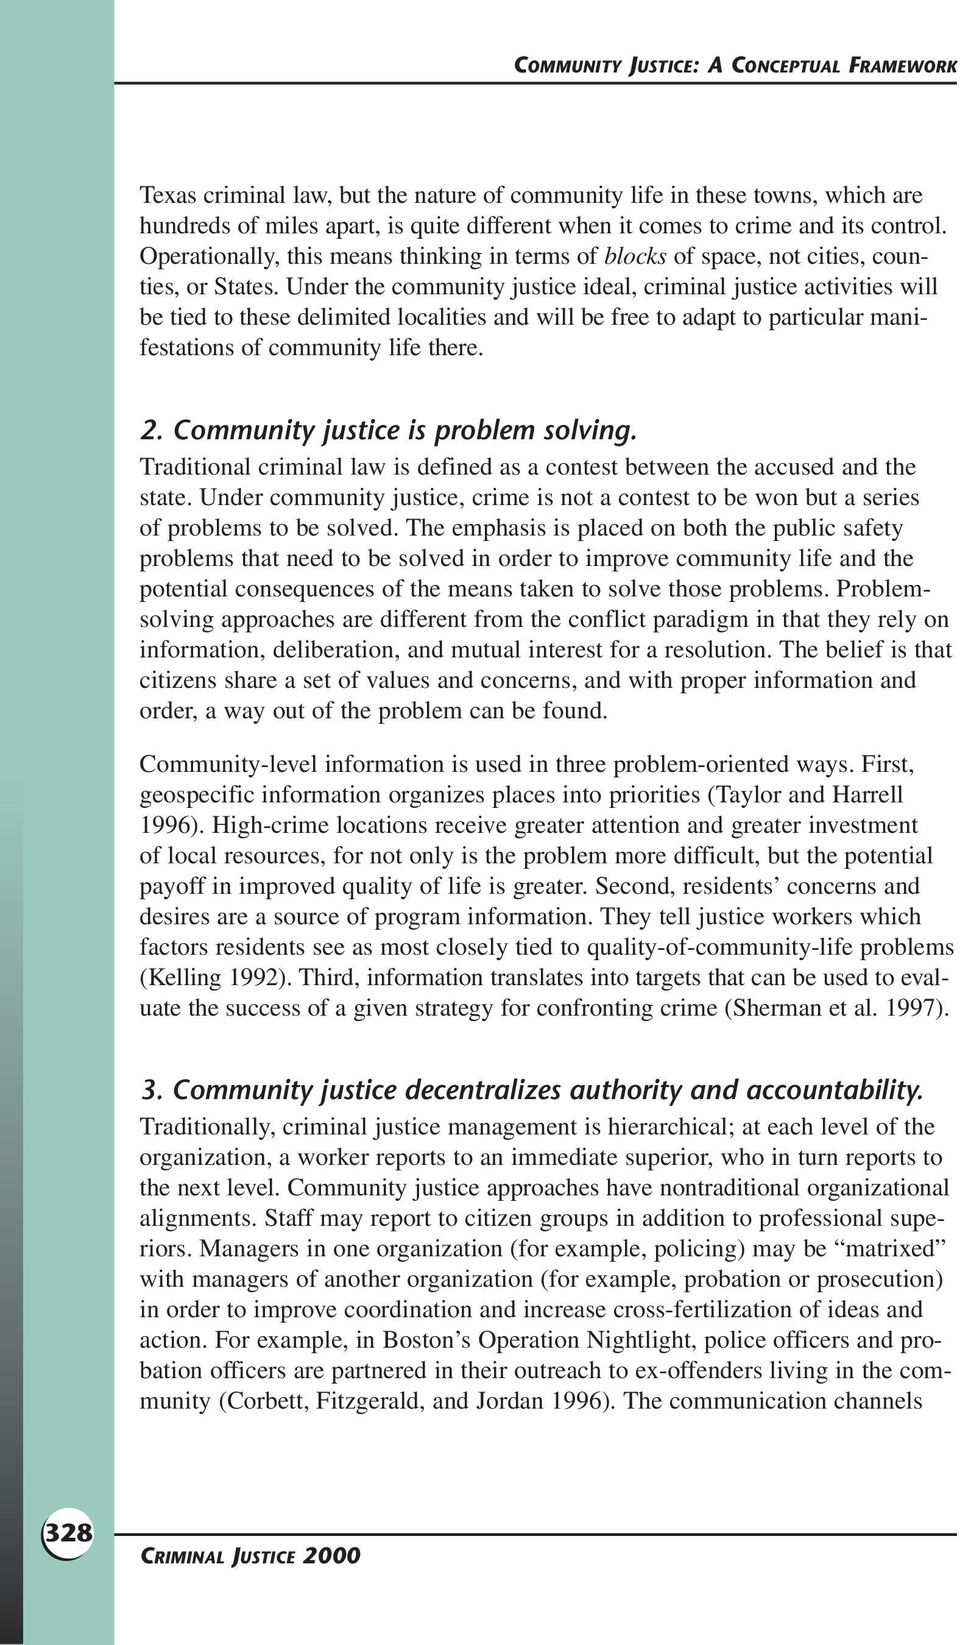 Under the community justice ideal, criminal justice activities will be tied to these delimited localities and will be free to adapt to particular manifestations of community life there. 2.